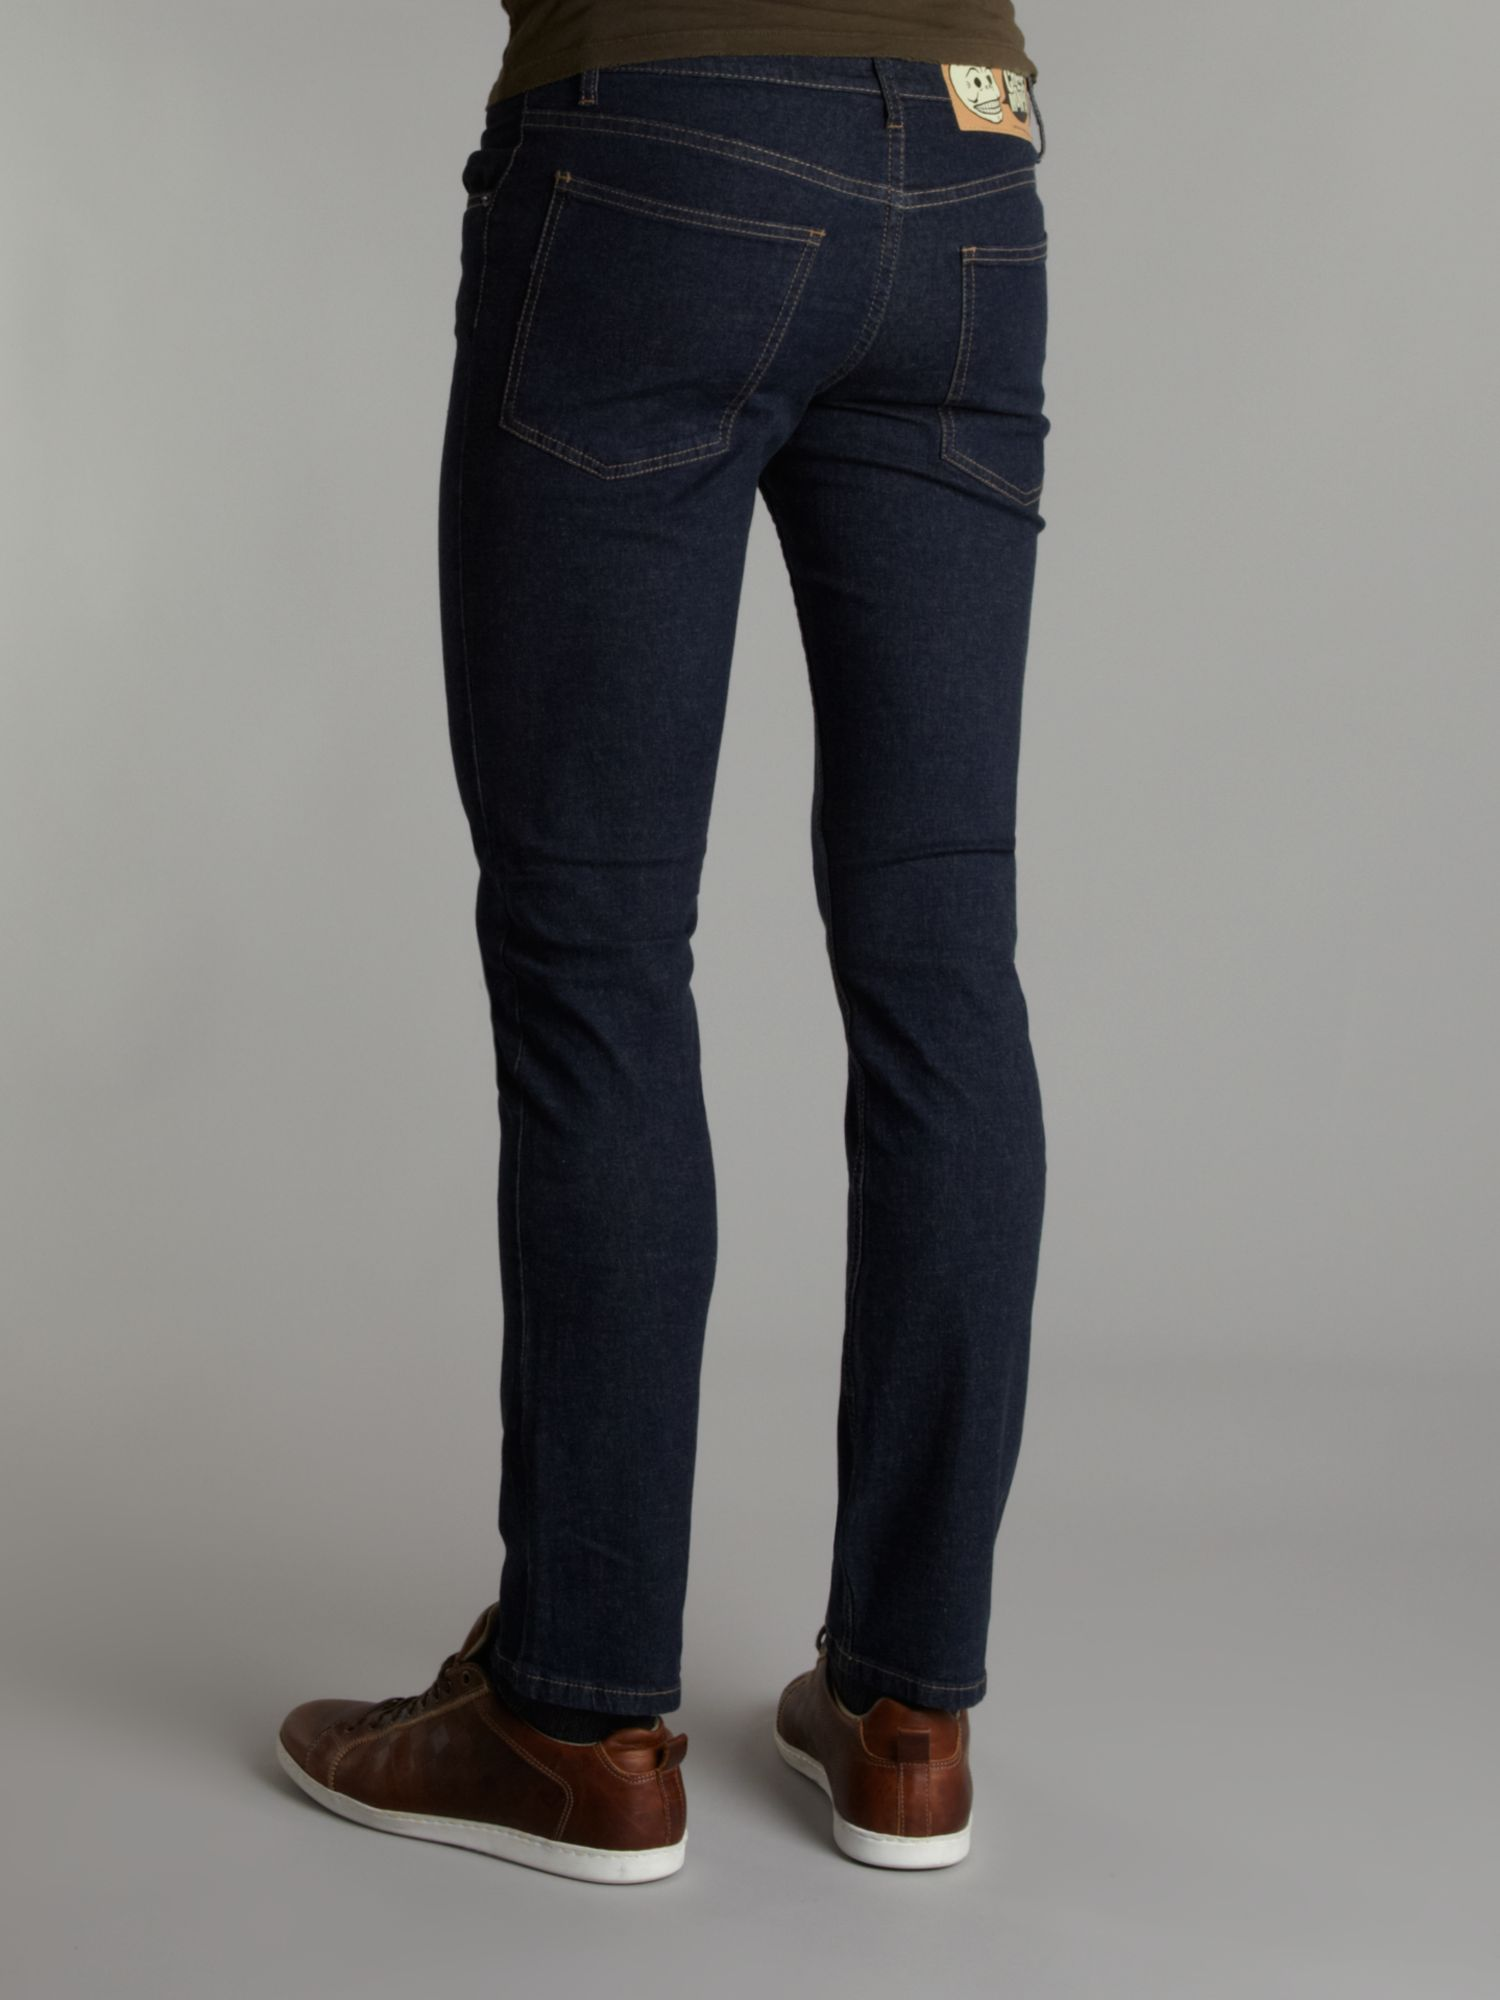 black single men in jean Jeans skinny, slim, cropped, or straight fits – we've got the best denim for men at urban outfitters shop our men's jeans in new cuts and washes from brands like bdg, cheap monday and levi's.